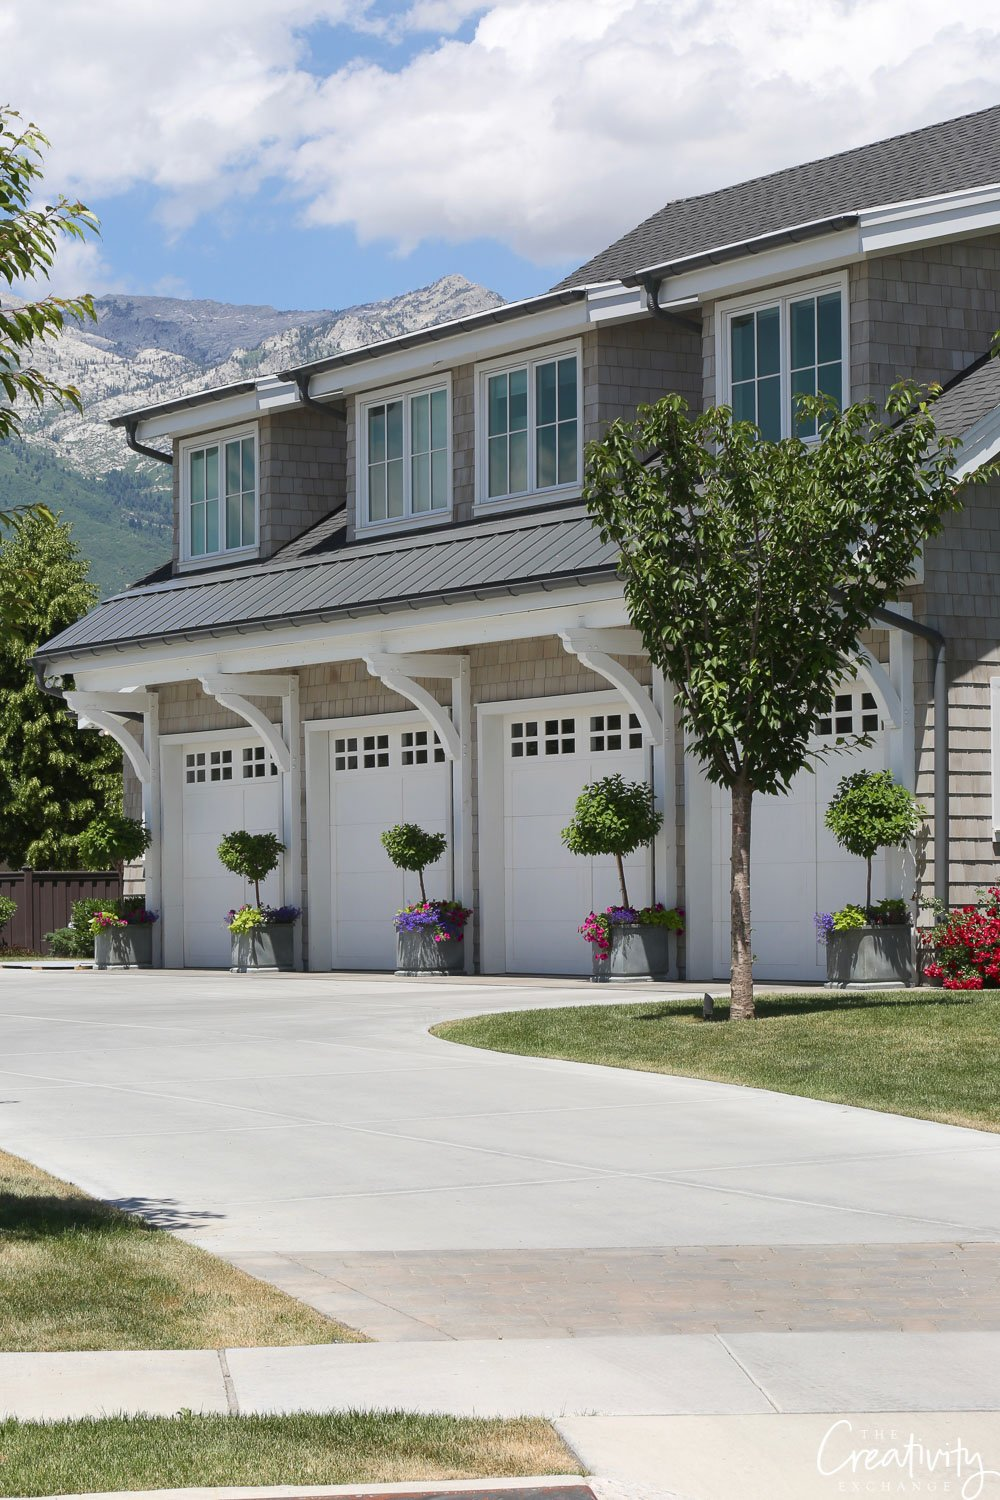 Four car garage with shaker exterior design.